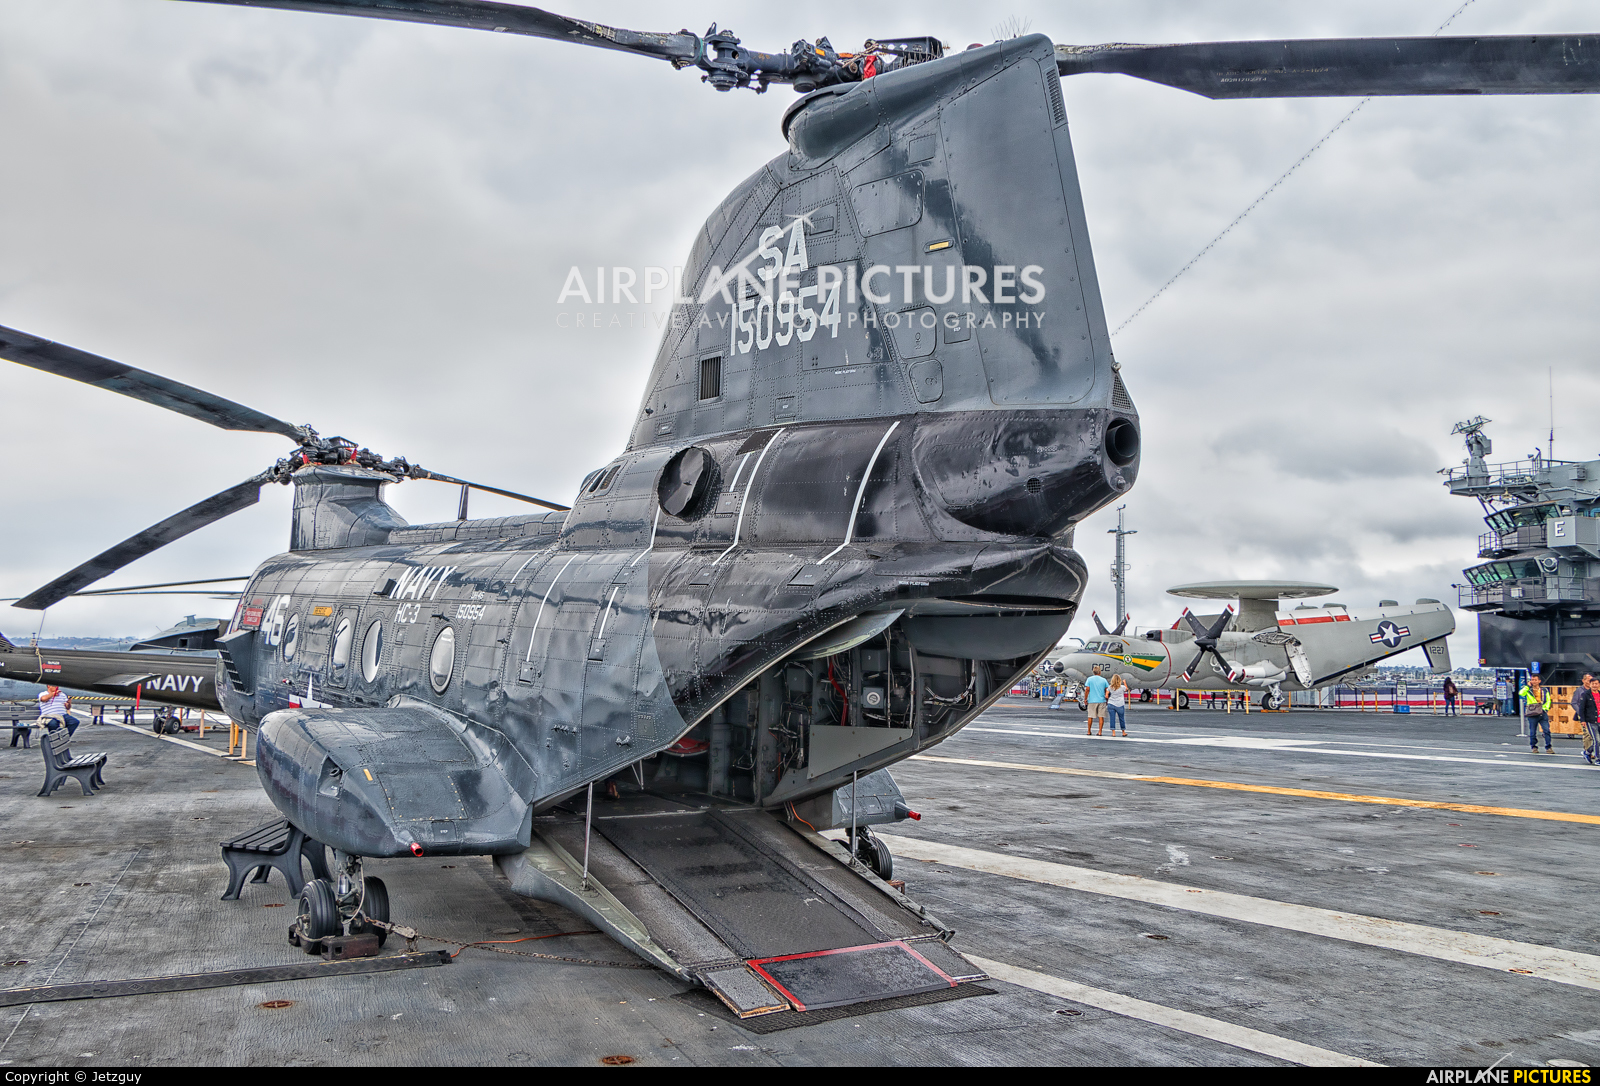 USA - Navy 150954 aircraft at San Diego - USS Midway Museum